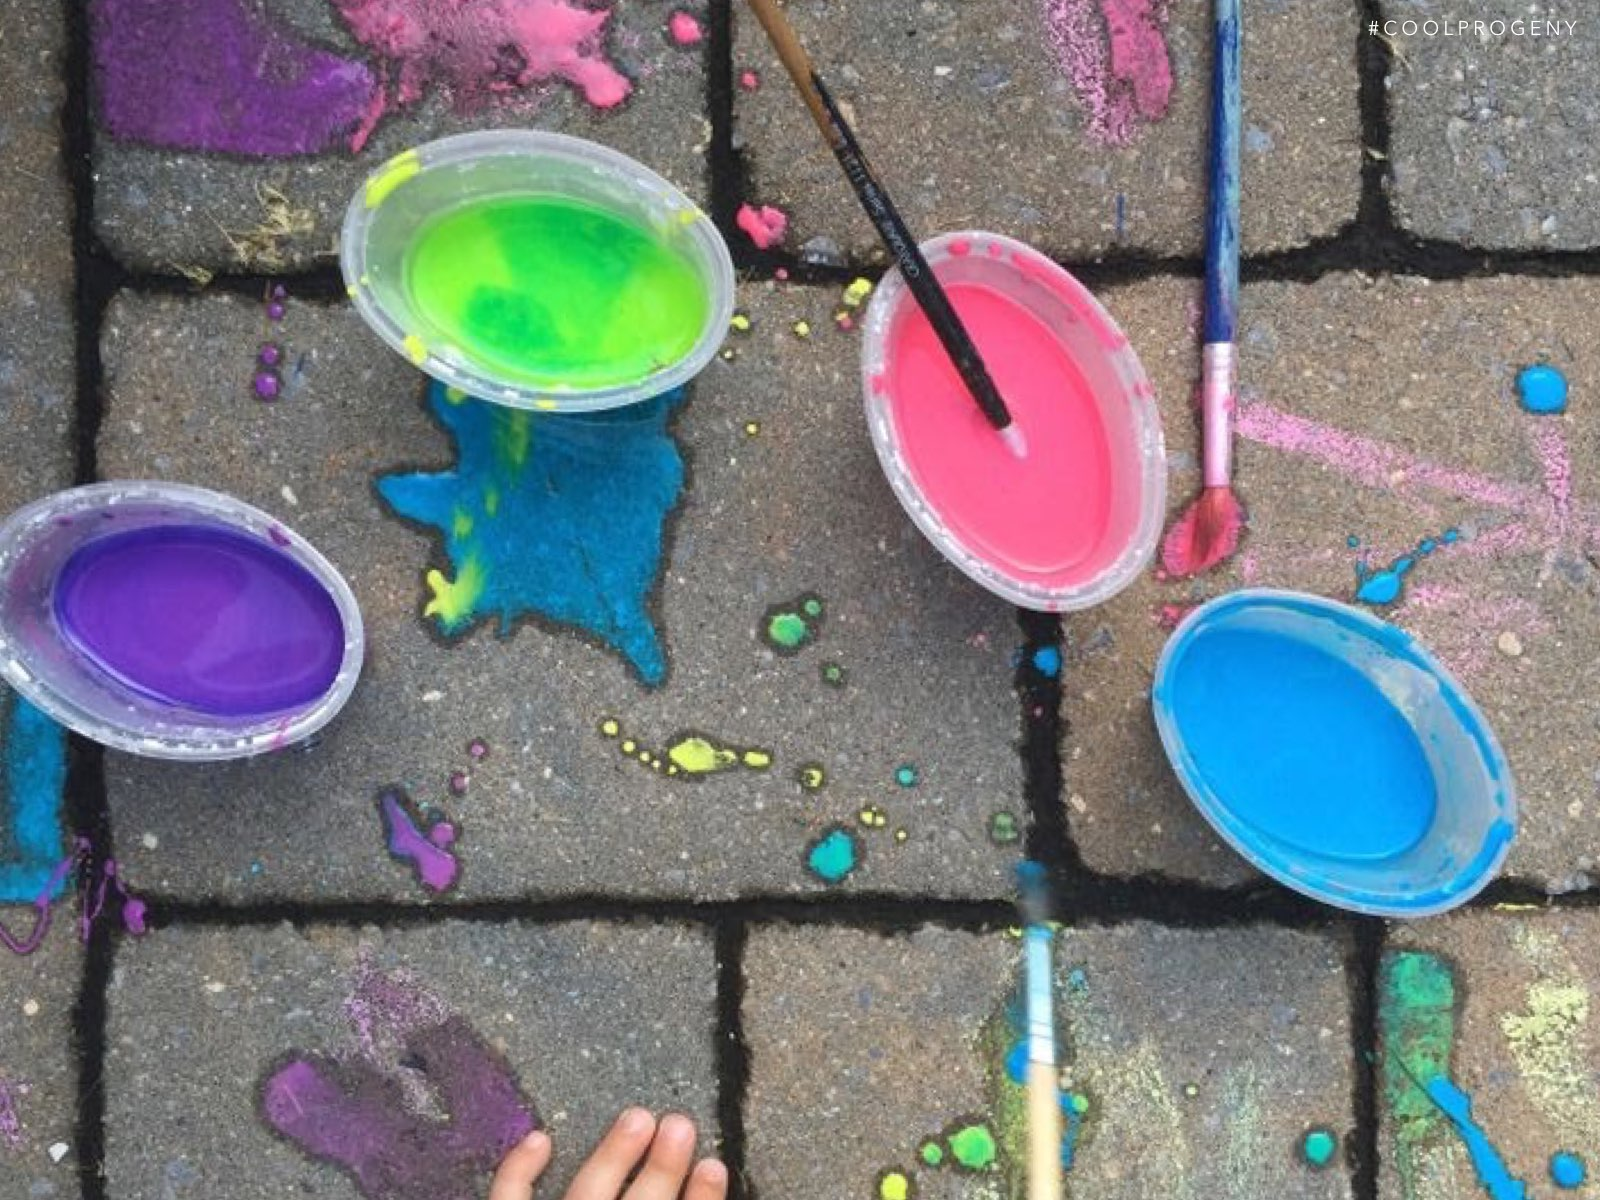 summer arts and crafts: sidewalk paint! - (cool) progeny